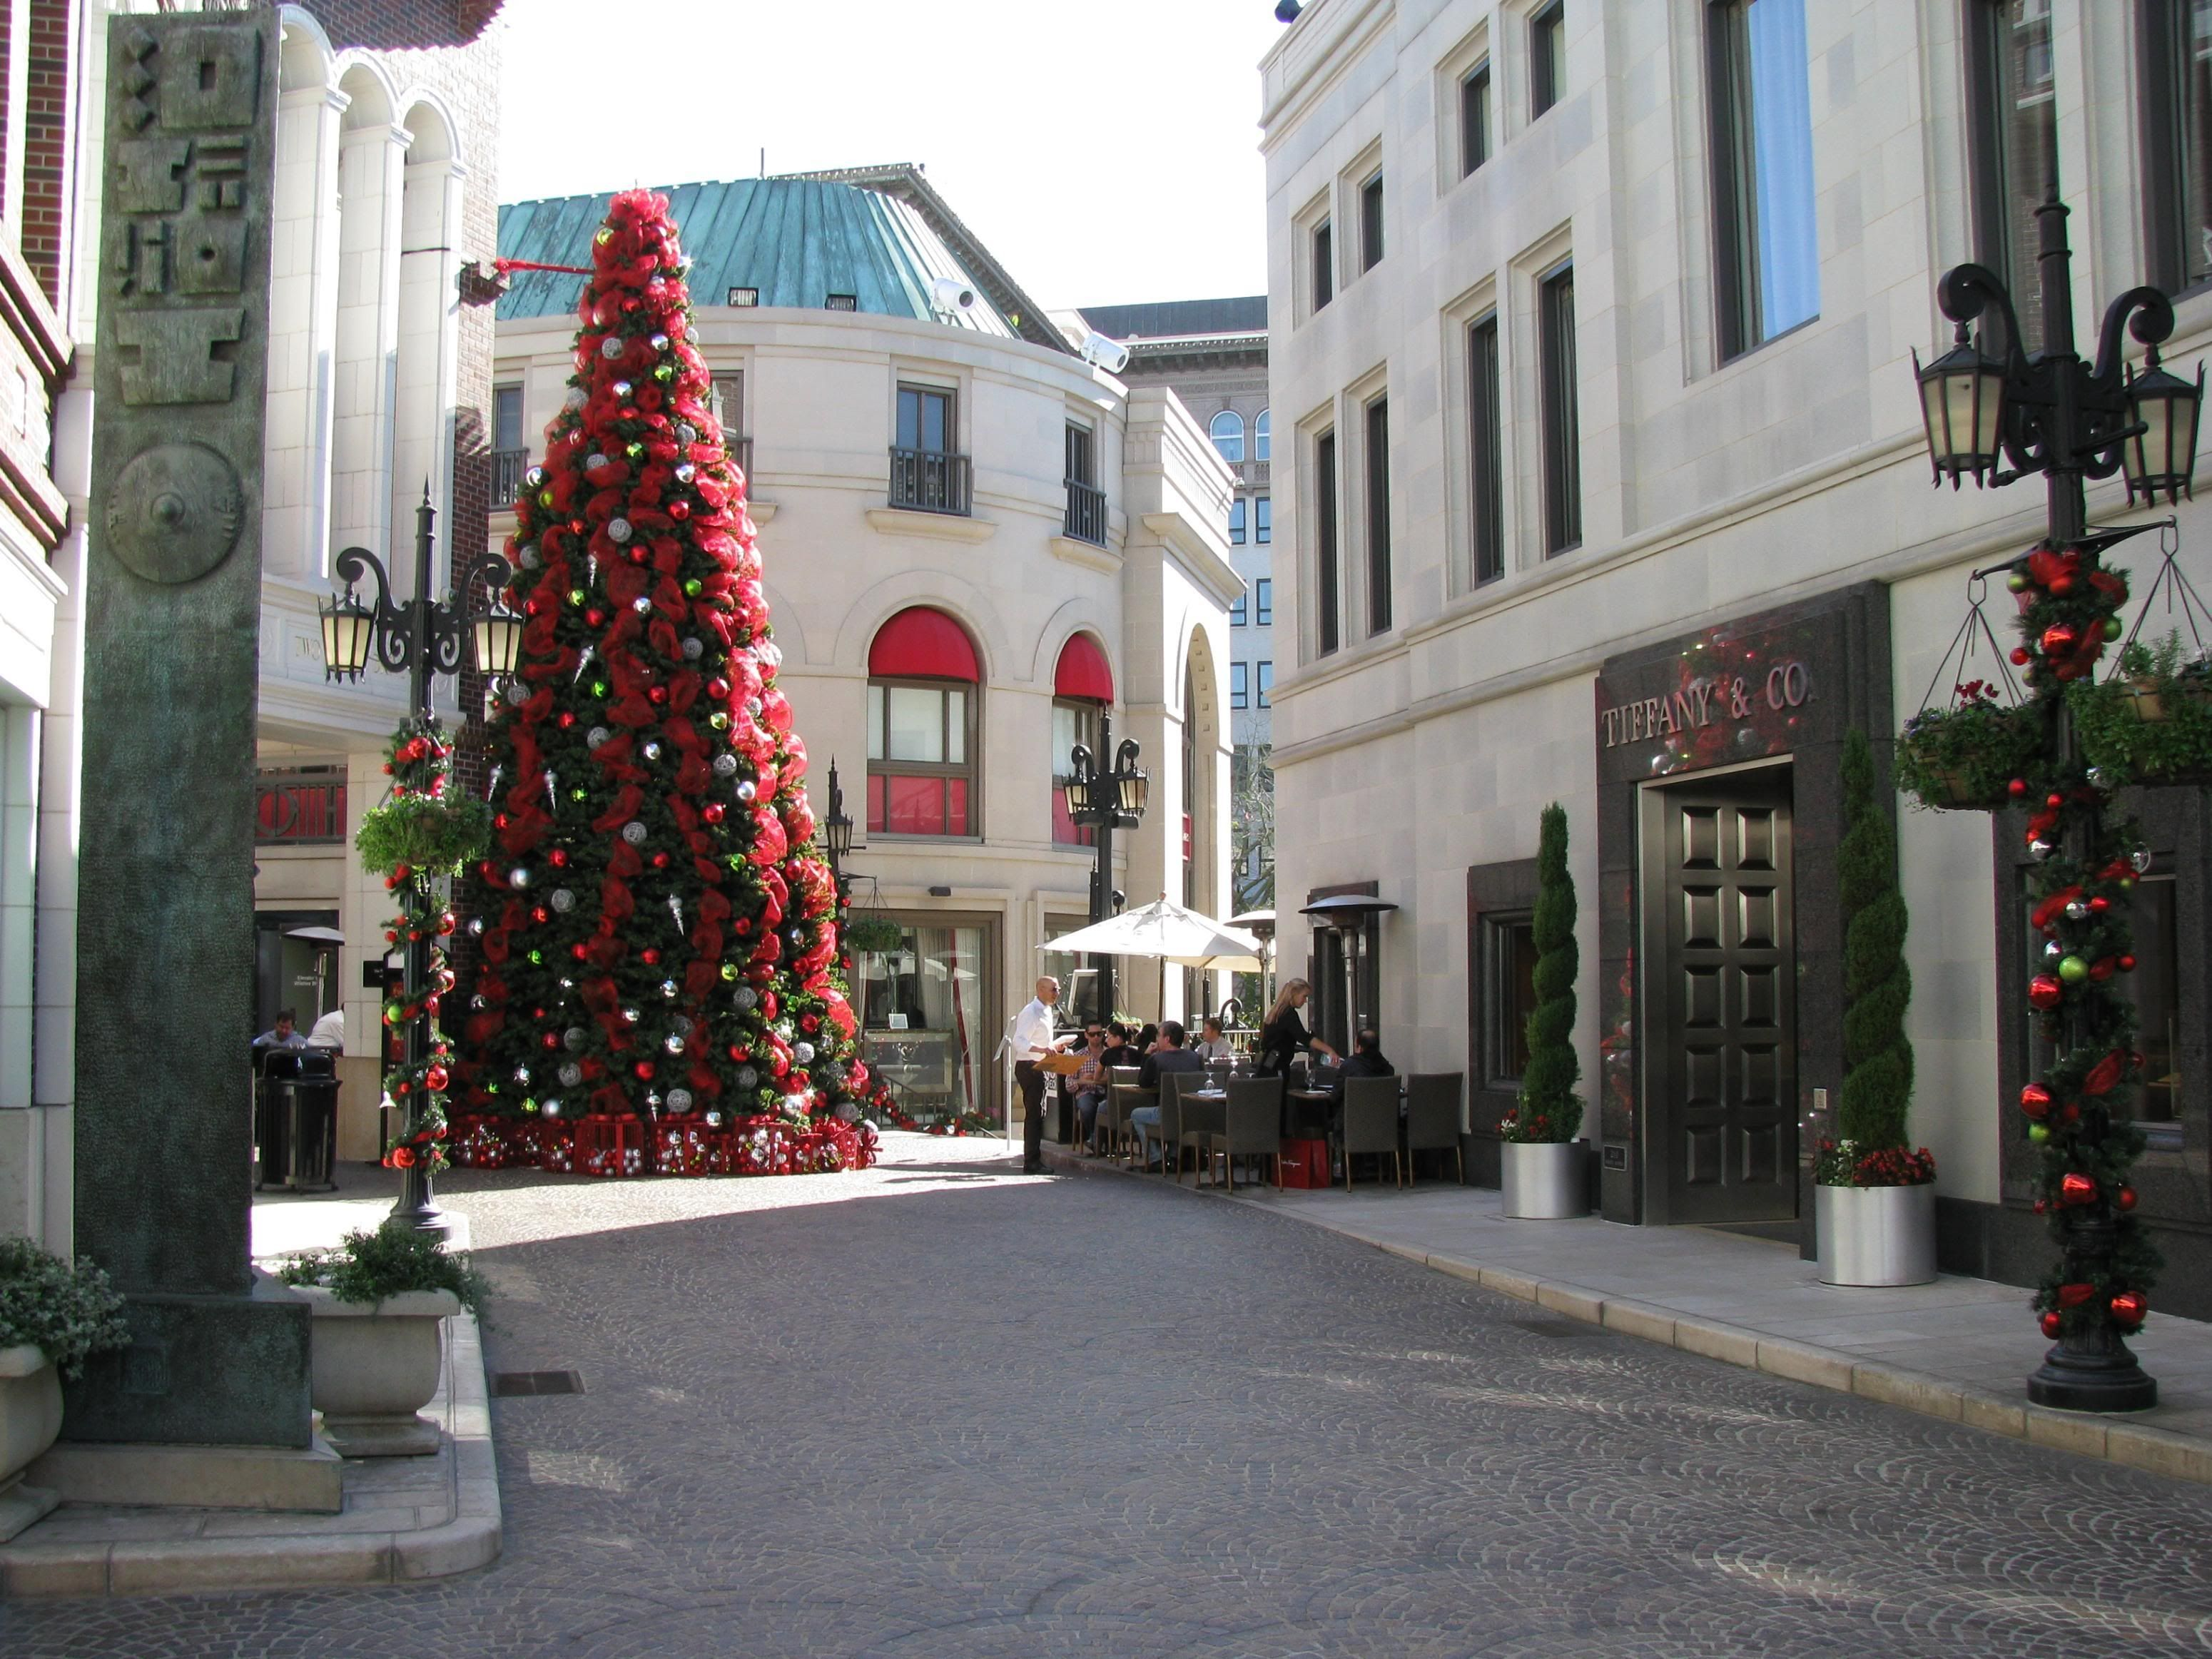 Beverly Hills California at Christmas time.